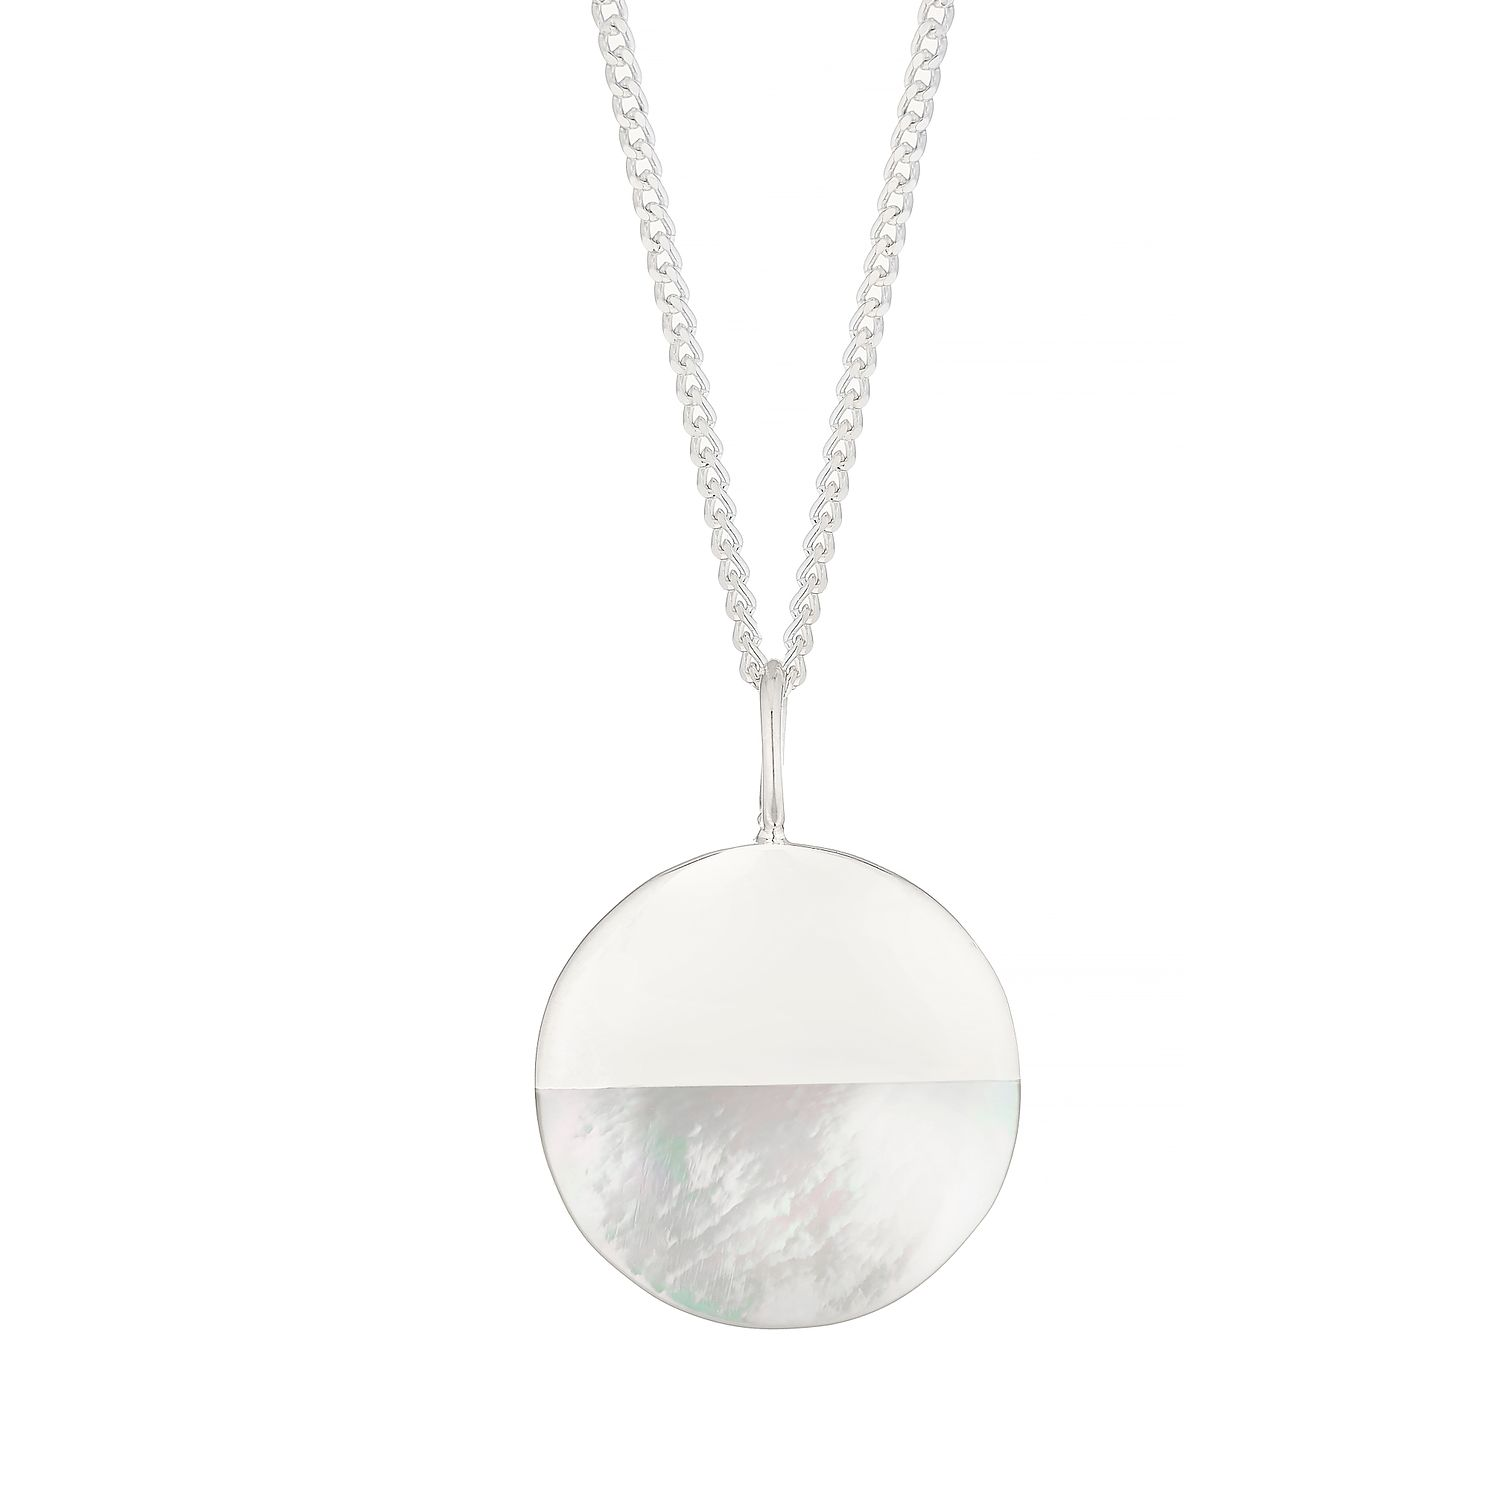 Silver Half Mother Of Pearl Disc Pendant - Product number 4842723